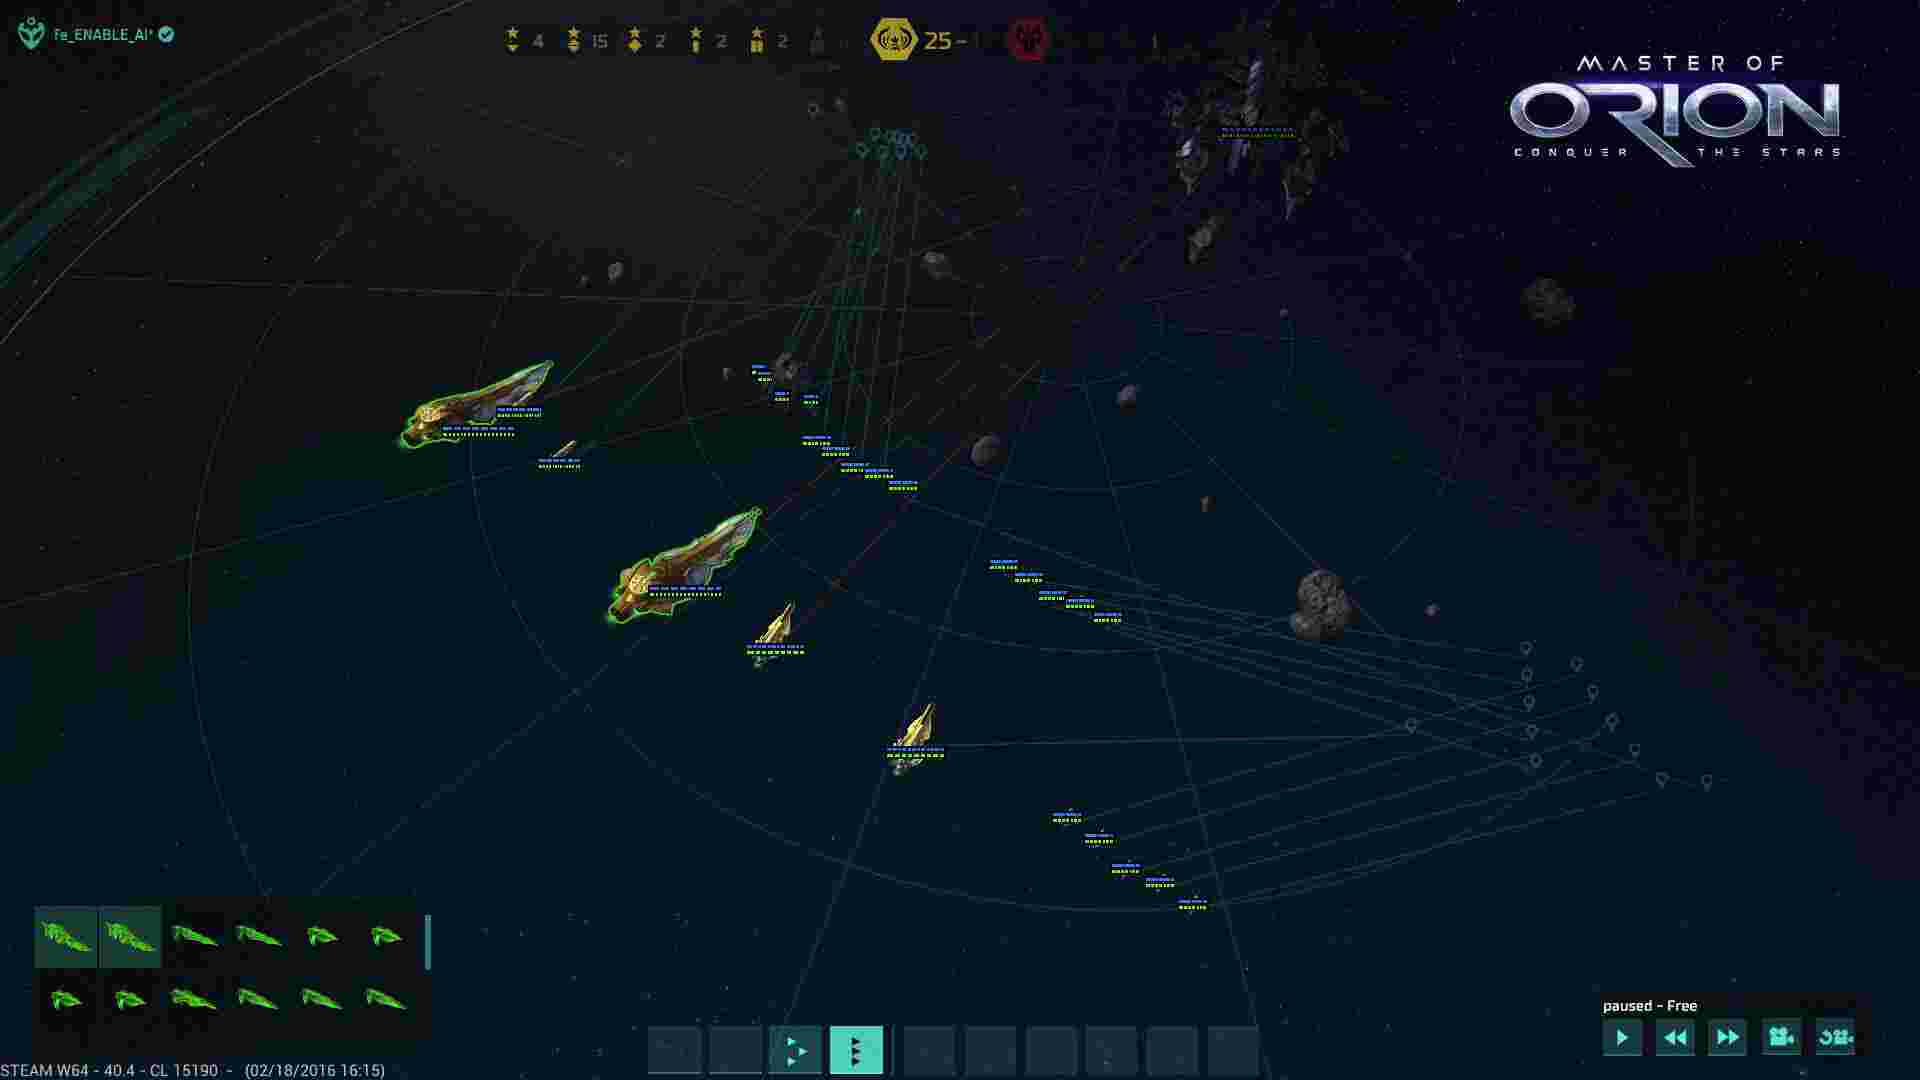 news.moo_screens_gameplay_early_access_image_05